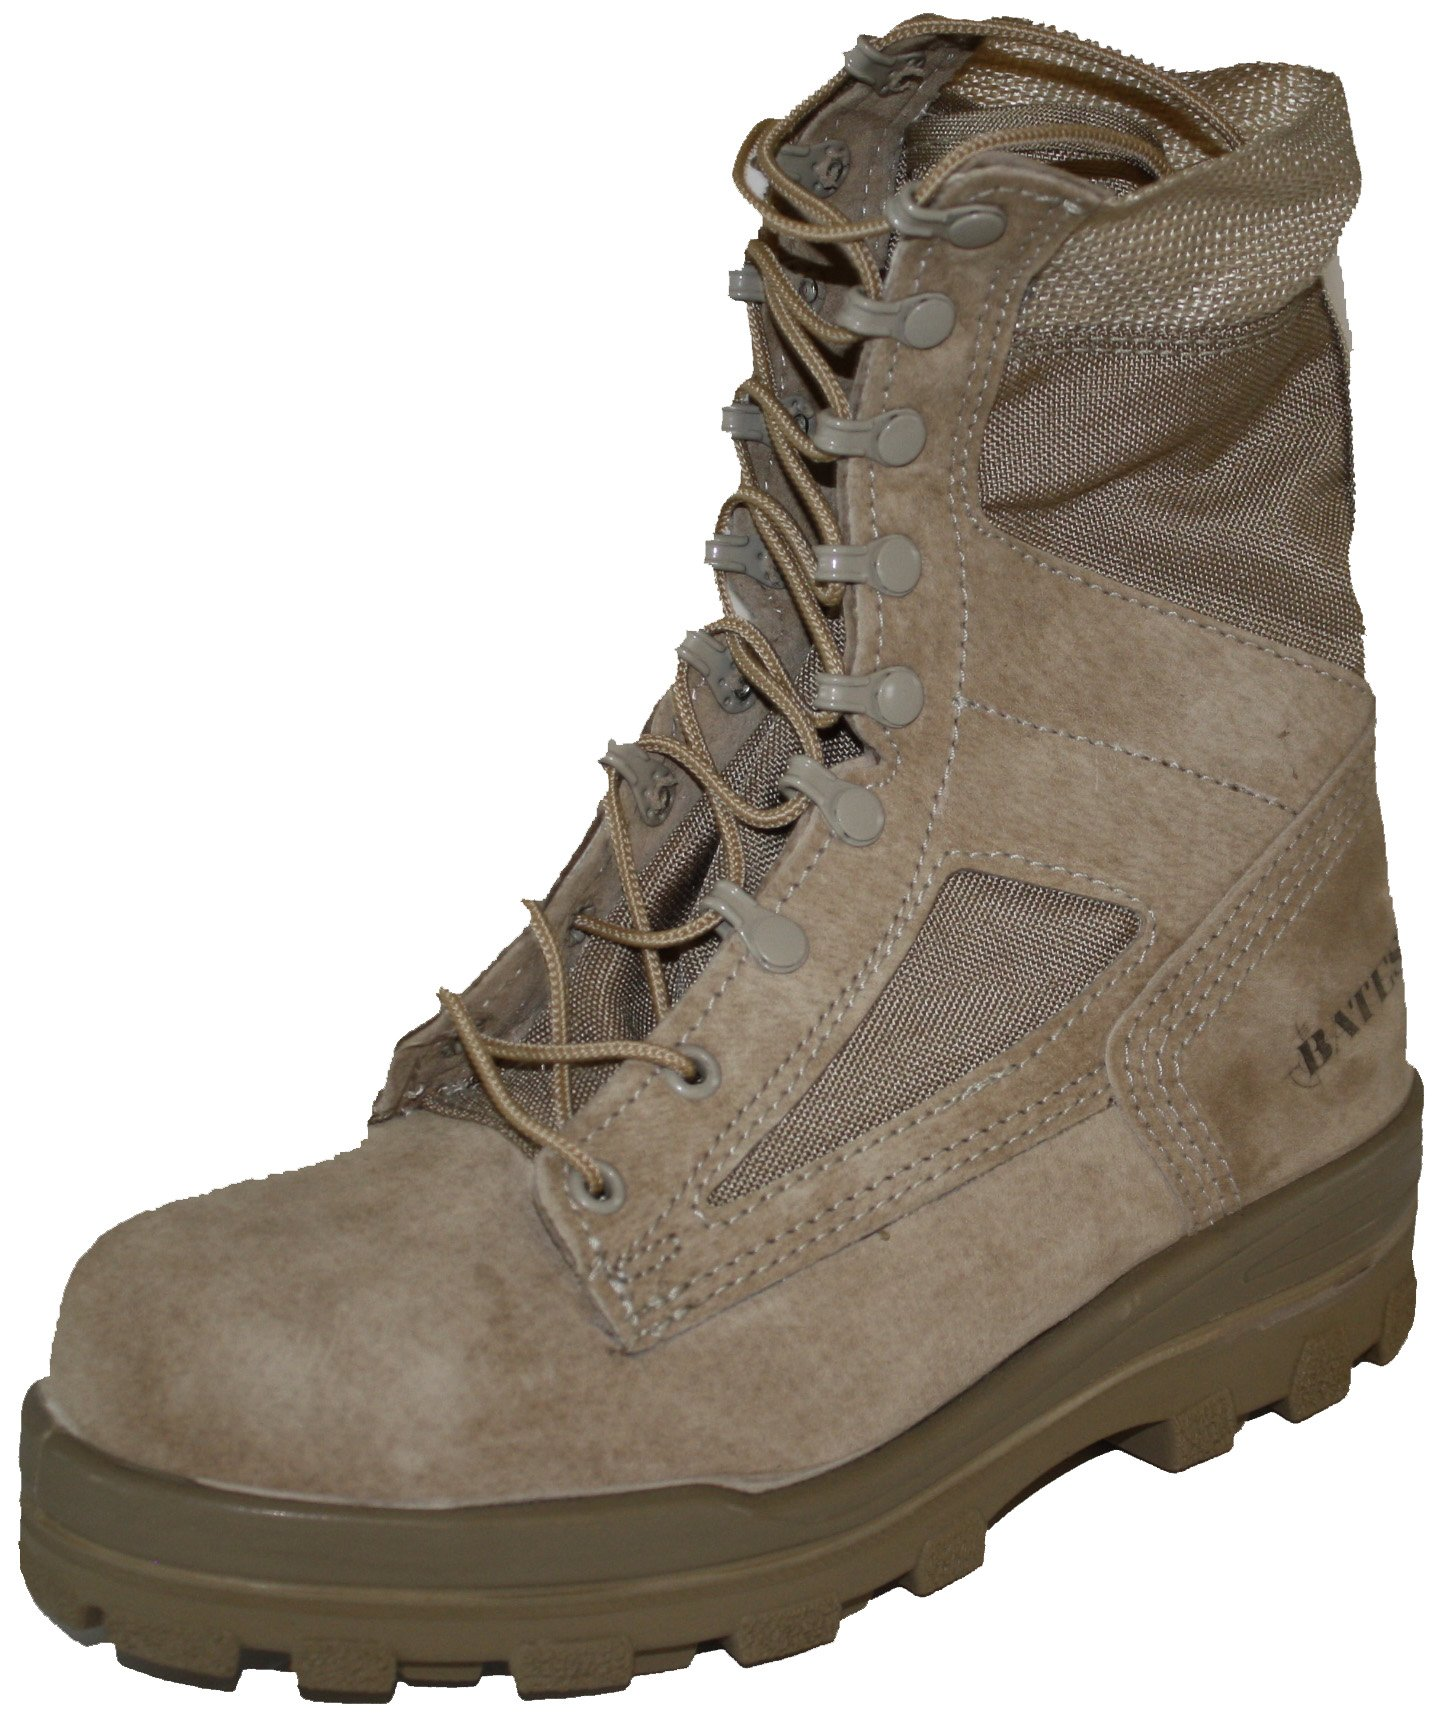 Bates Women's 8 Inches Durashocks Steel Toe Boot,Desert Sand,10 M US by Bates (Image #1)